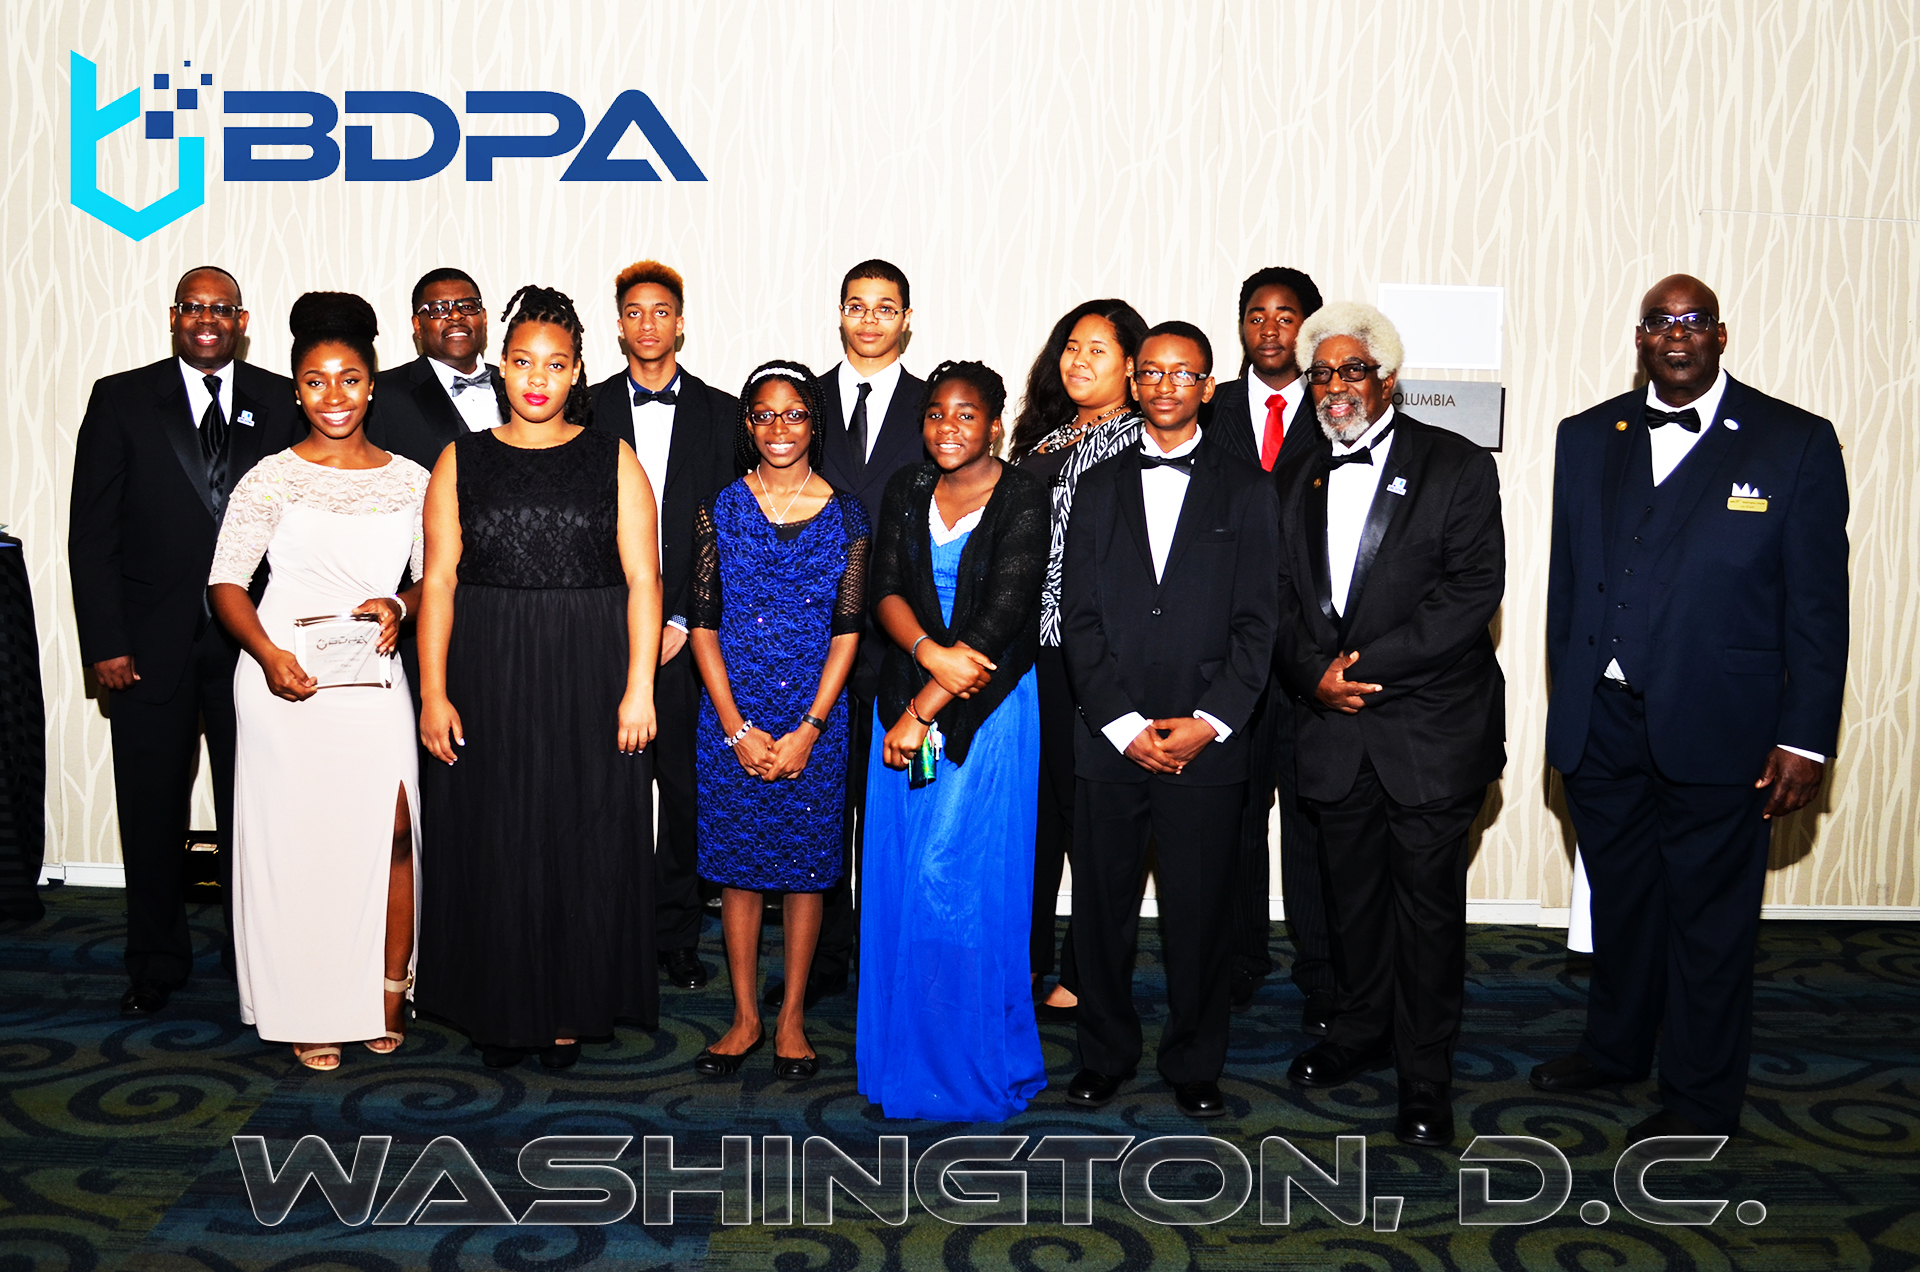 BDPA Washington, D.C. |  BDPADC.org